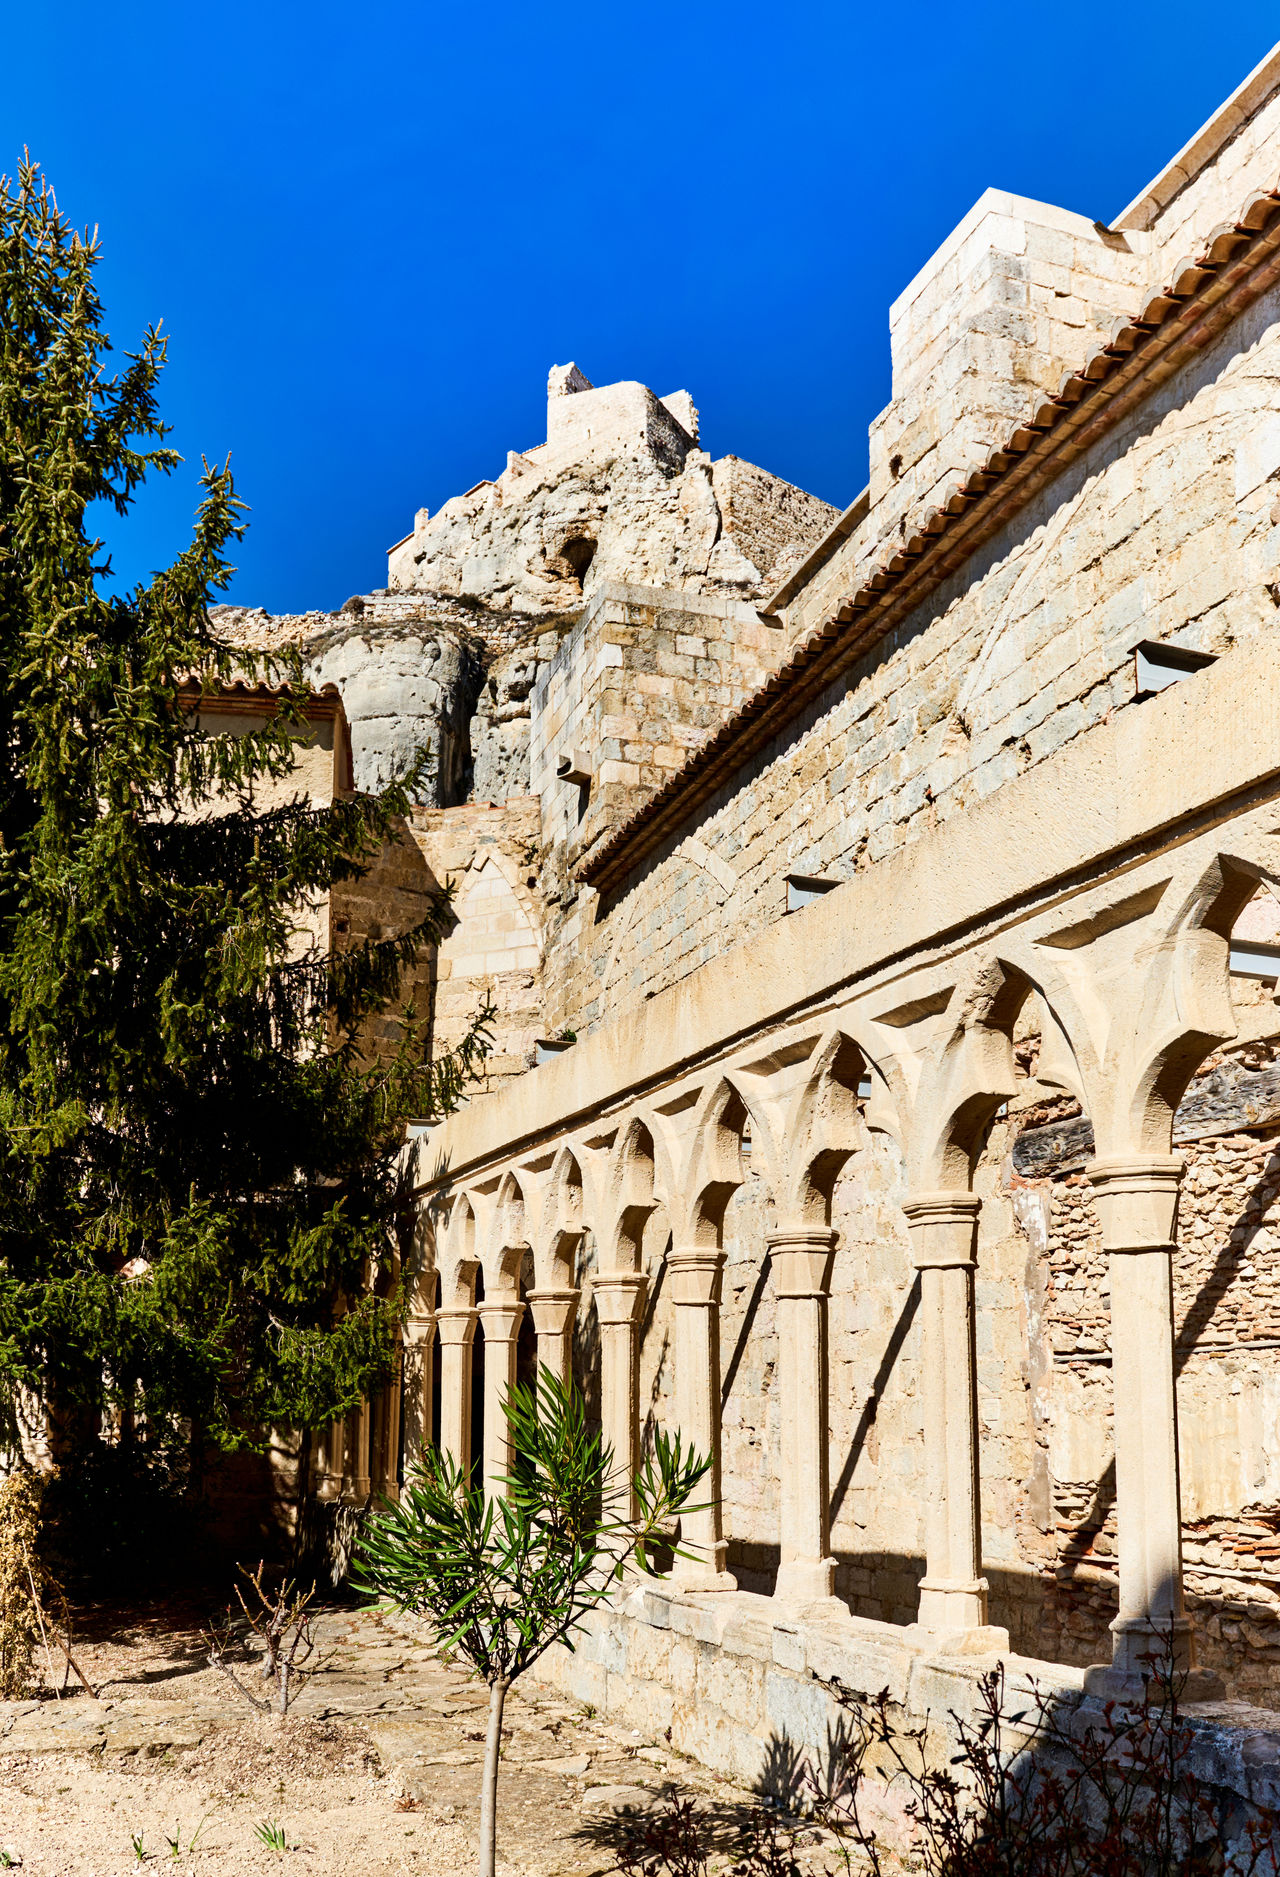 Castle of Morella, province of Castellon, Valencian Community, Spain. Morella Castle was declared a monument of artistic and historical importance. Ancient Architecture Arabic Architecture Blue Sky Castellón Castle Defensive Europe Fortification Fragment Gothic Architecture Heritage Building History Landmark Maestrazgo Medieval Architecture Monument Morella Nobody Old Ruin Outdoors Part Ruined Castle SPAIN Sunny Day Travel Destinations